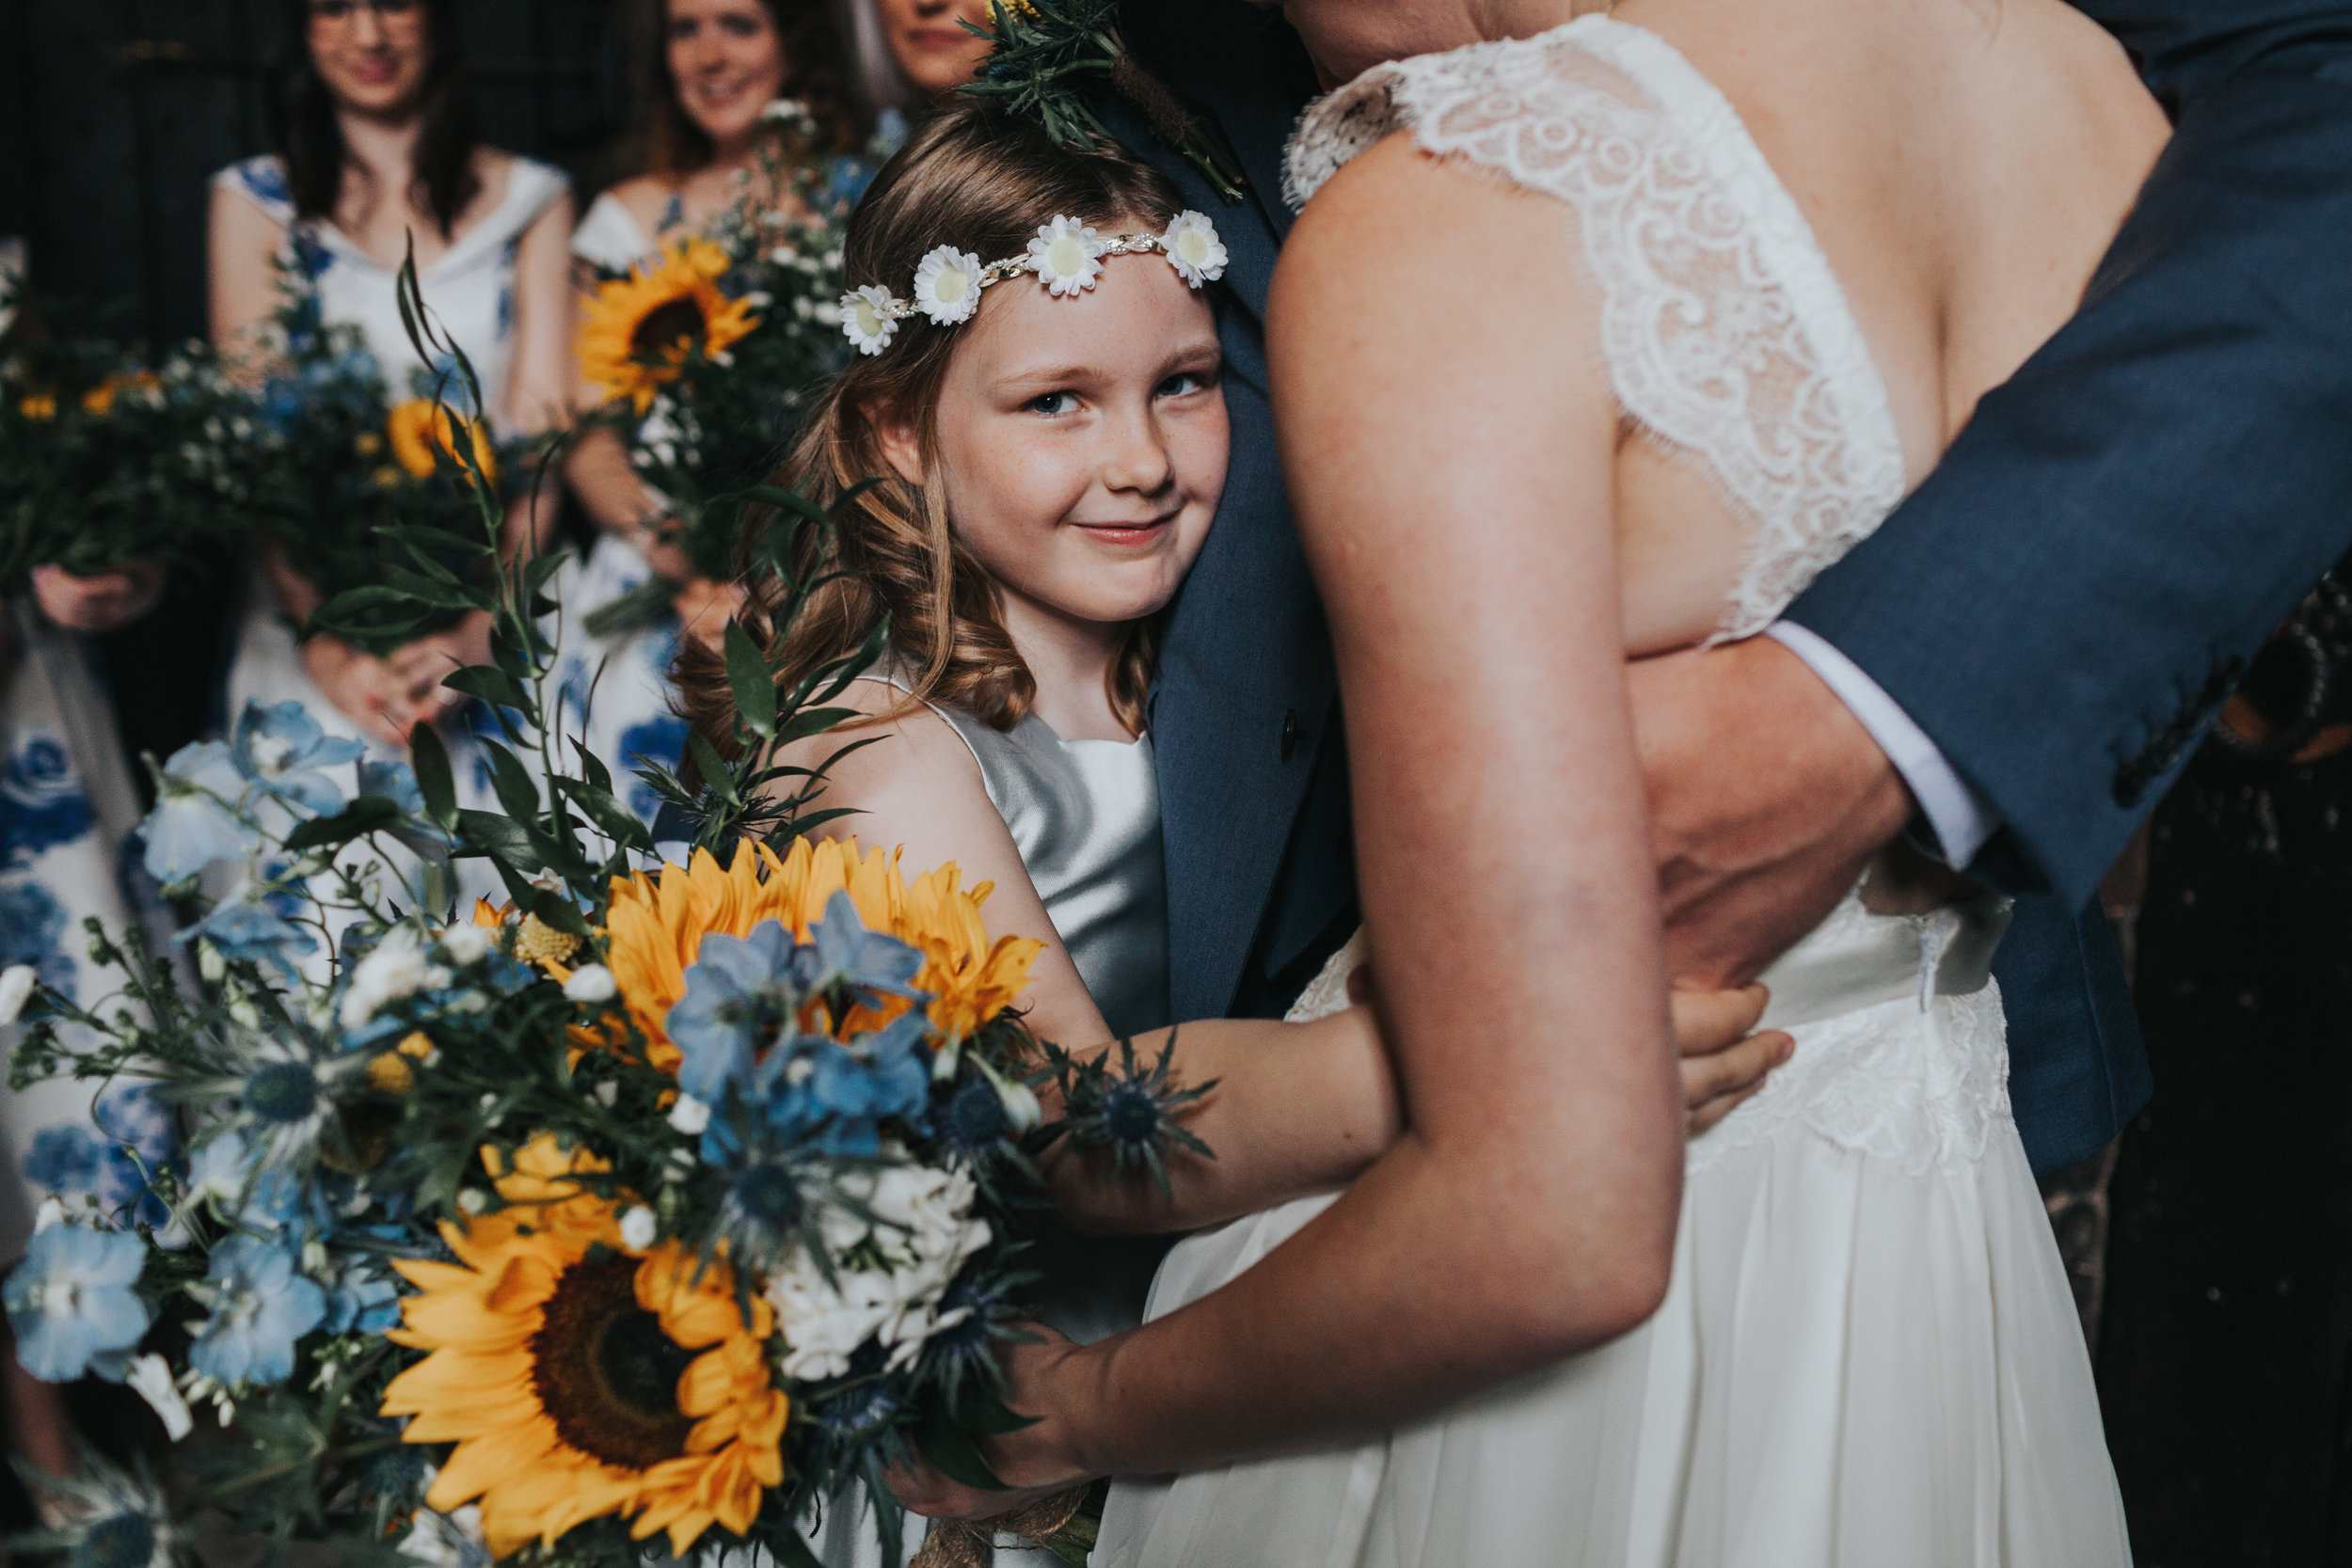 Unposed photograph of a flower girl hugs the bride and groom while looking into the camera at Chetham Library Manchester.